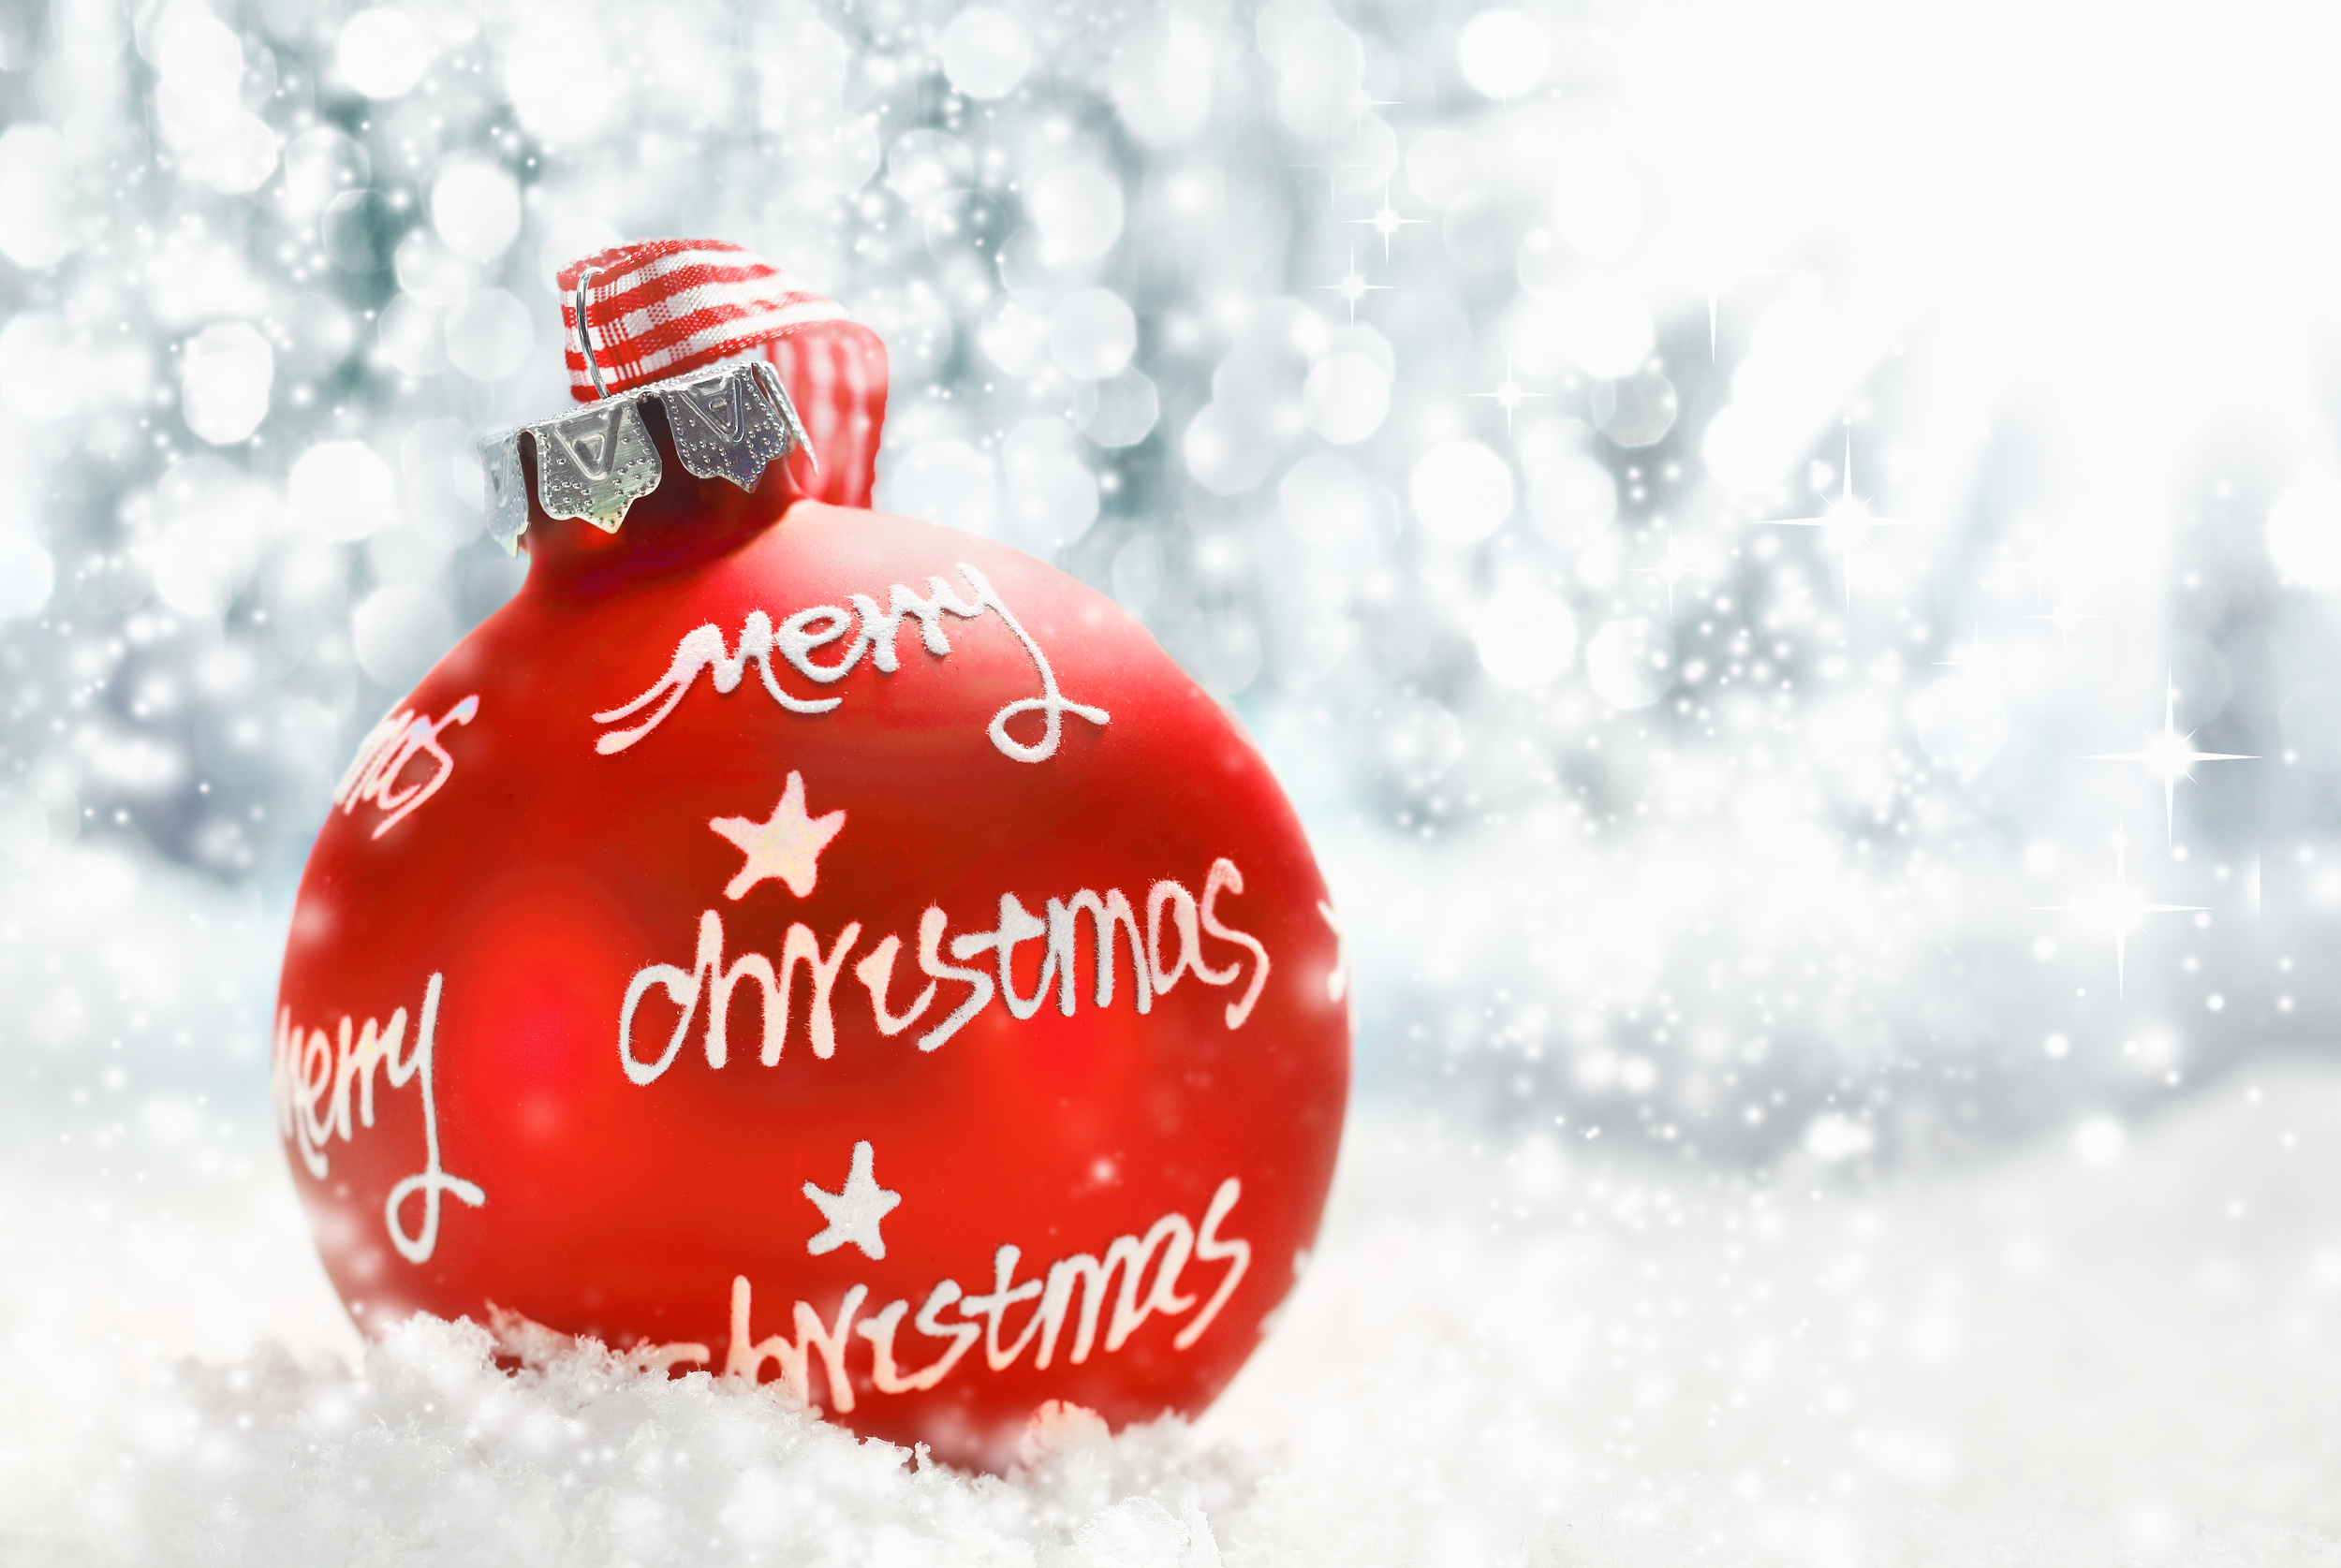 Merry Christmas red Christmas ornament. Source: stockcreations/Shutterstock.com